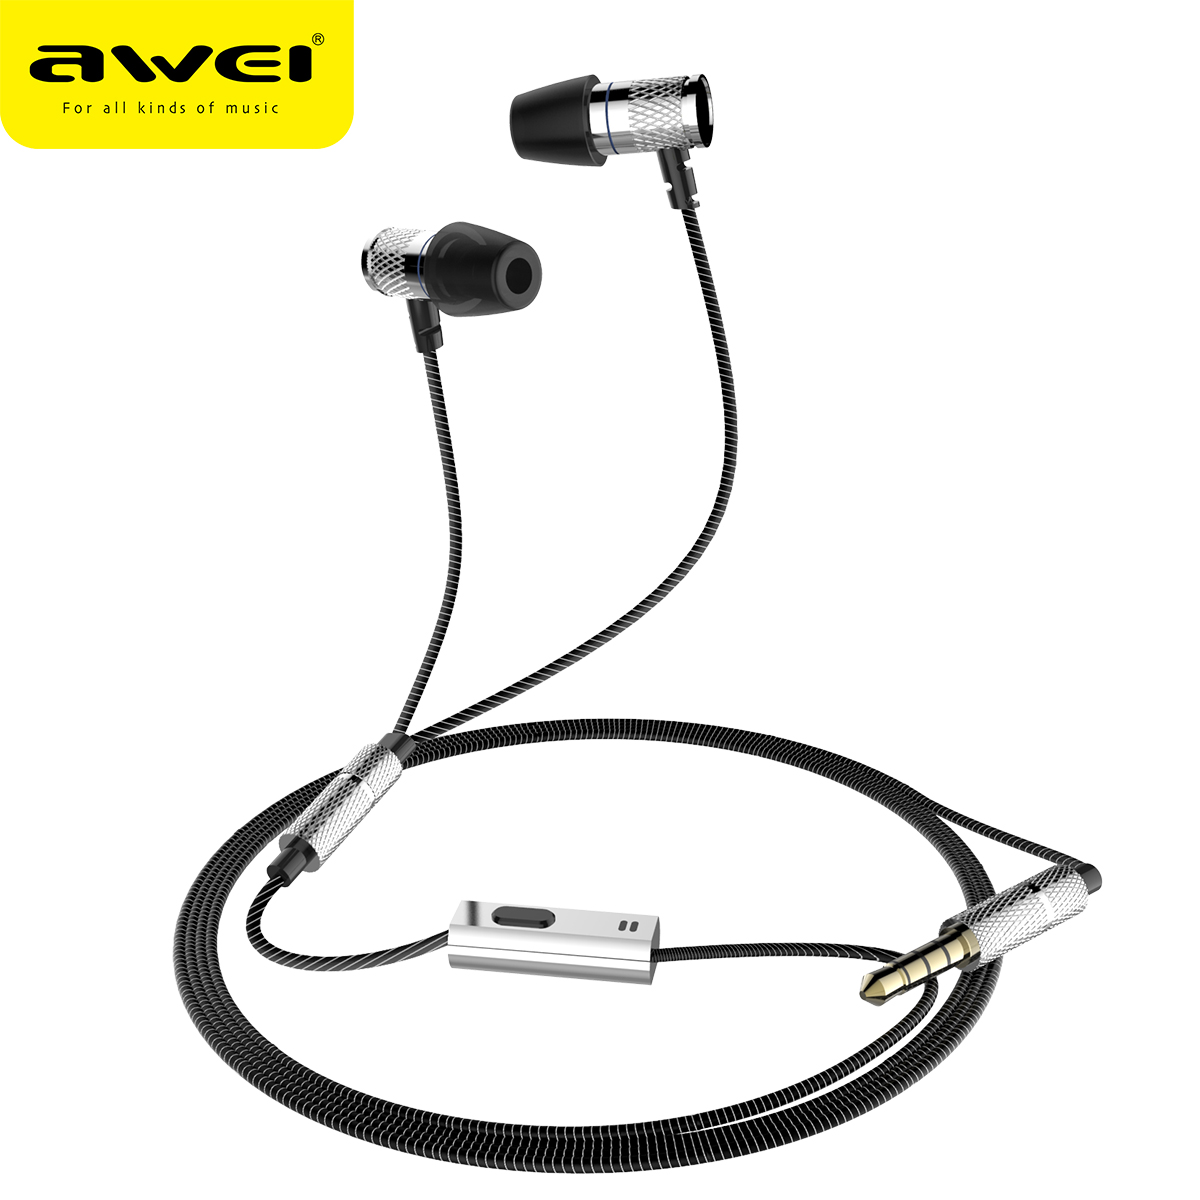 AWEI ES-660i Wired Earphones HiFi Stereo In Ear Earpiece Super Bass Sound Sport Music Earbud fone de ouvido casque auriculares awei es 660i mini earphone with microphone metal headset hifi fone de ouvido audifonos casque for iphone samsung huawei phones